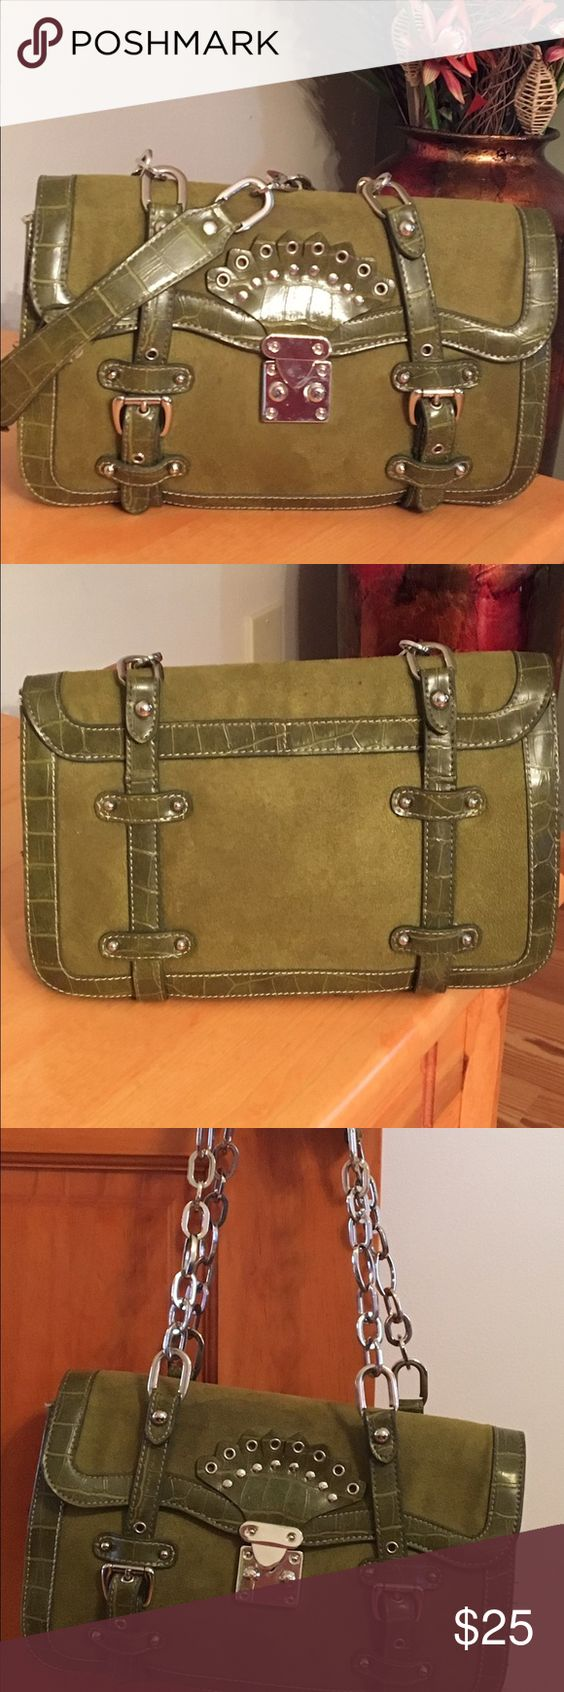 Nordstrom Alligator Print Trim/Suede 👜 Very pre-loved handbag. Rare design. I receive non-stop compliments on this bag!! Divided compartments with zip enclosure. Not perfect shape but lots of life. Price reflects and is firm. 11 x 8 x 3 in. Very clean. Handle shows a little wear. Nordstrom Bags Shoulder Bags